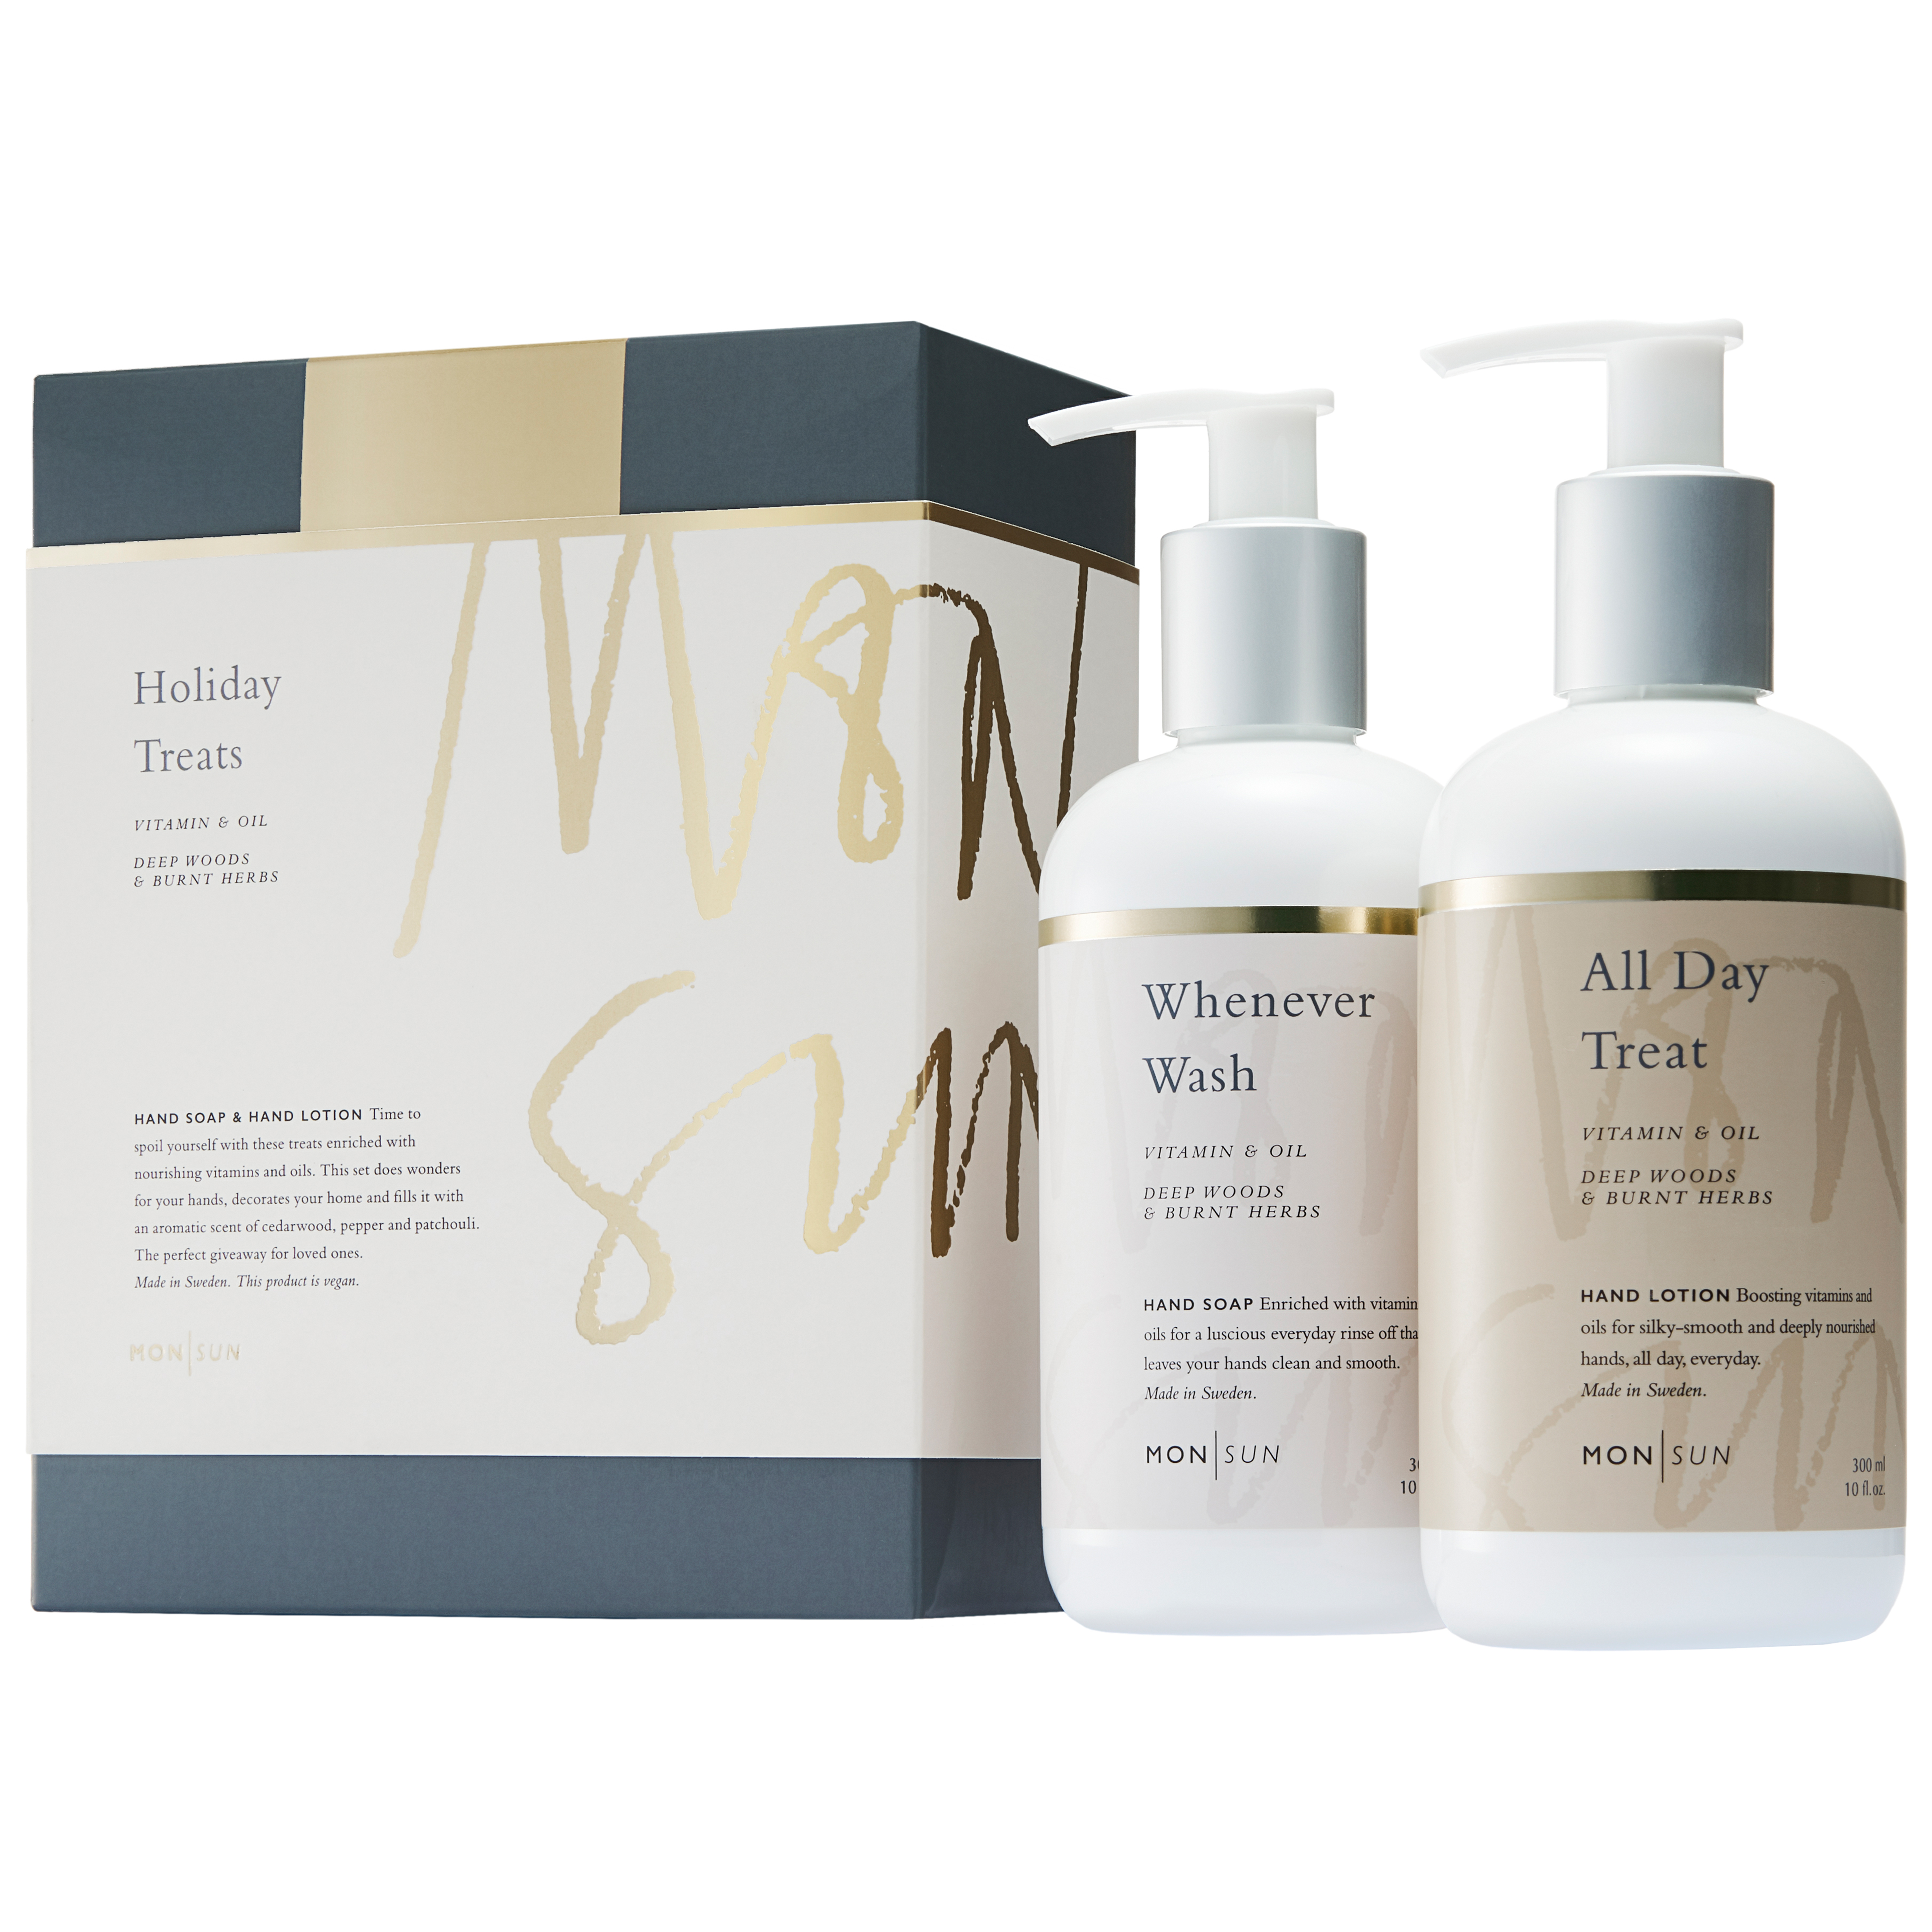 Holiday Treats Handsoap & Handlotion Giftbox